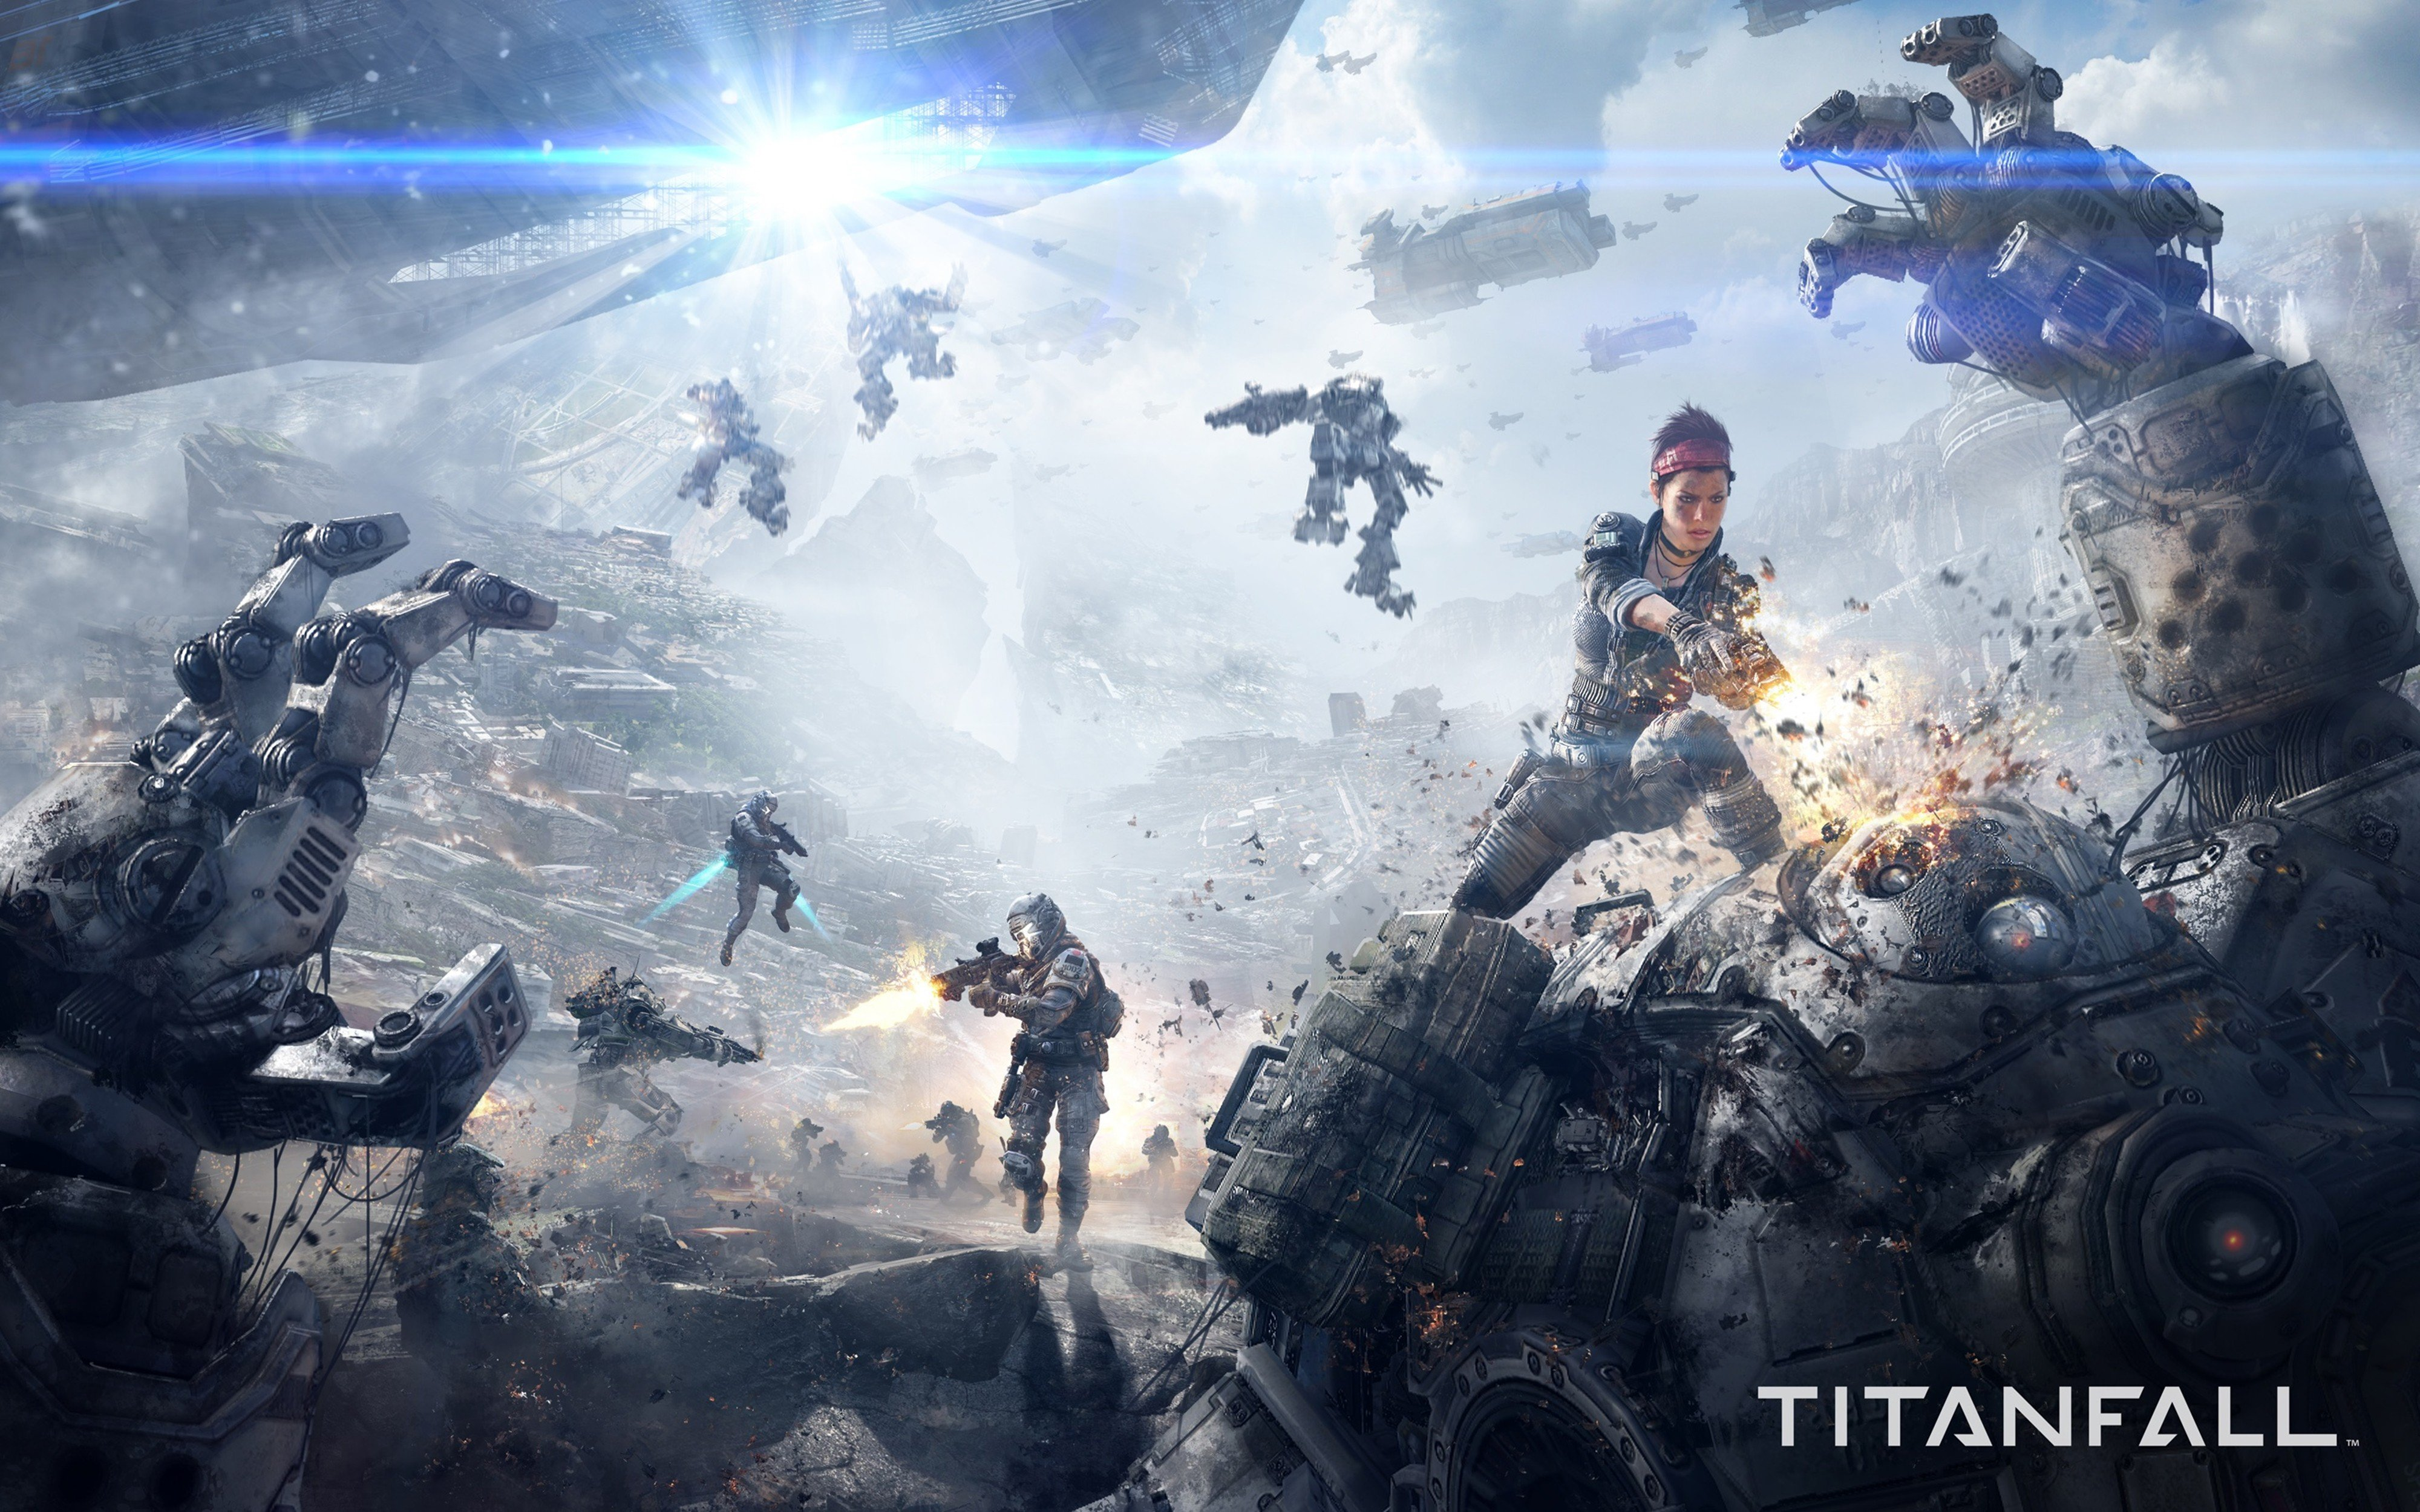 titanfall game sci-fi future war battle 4000x2500